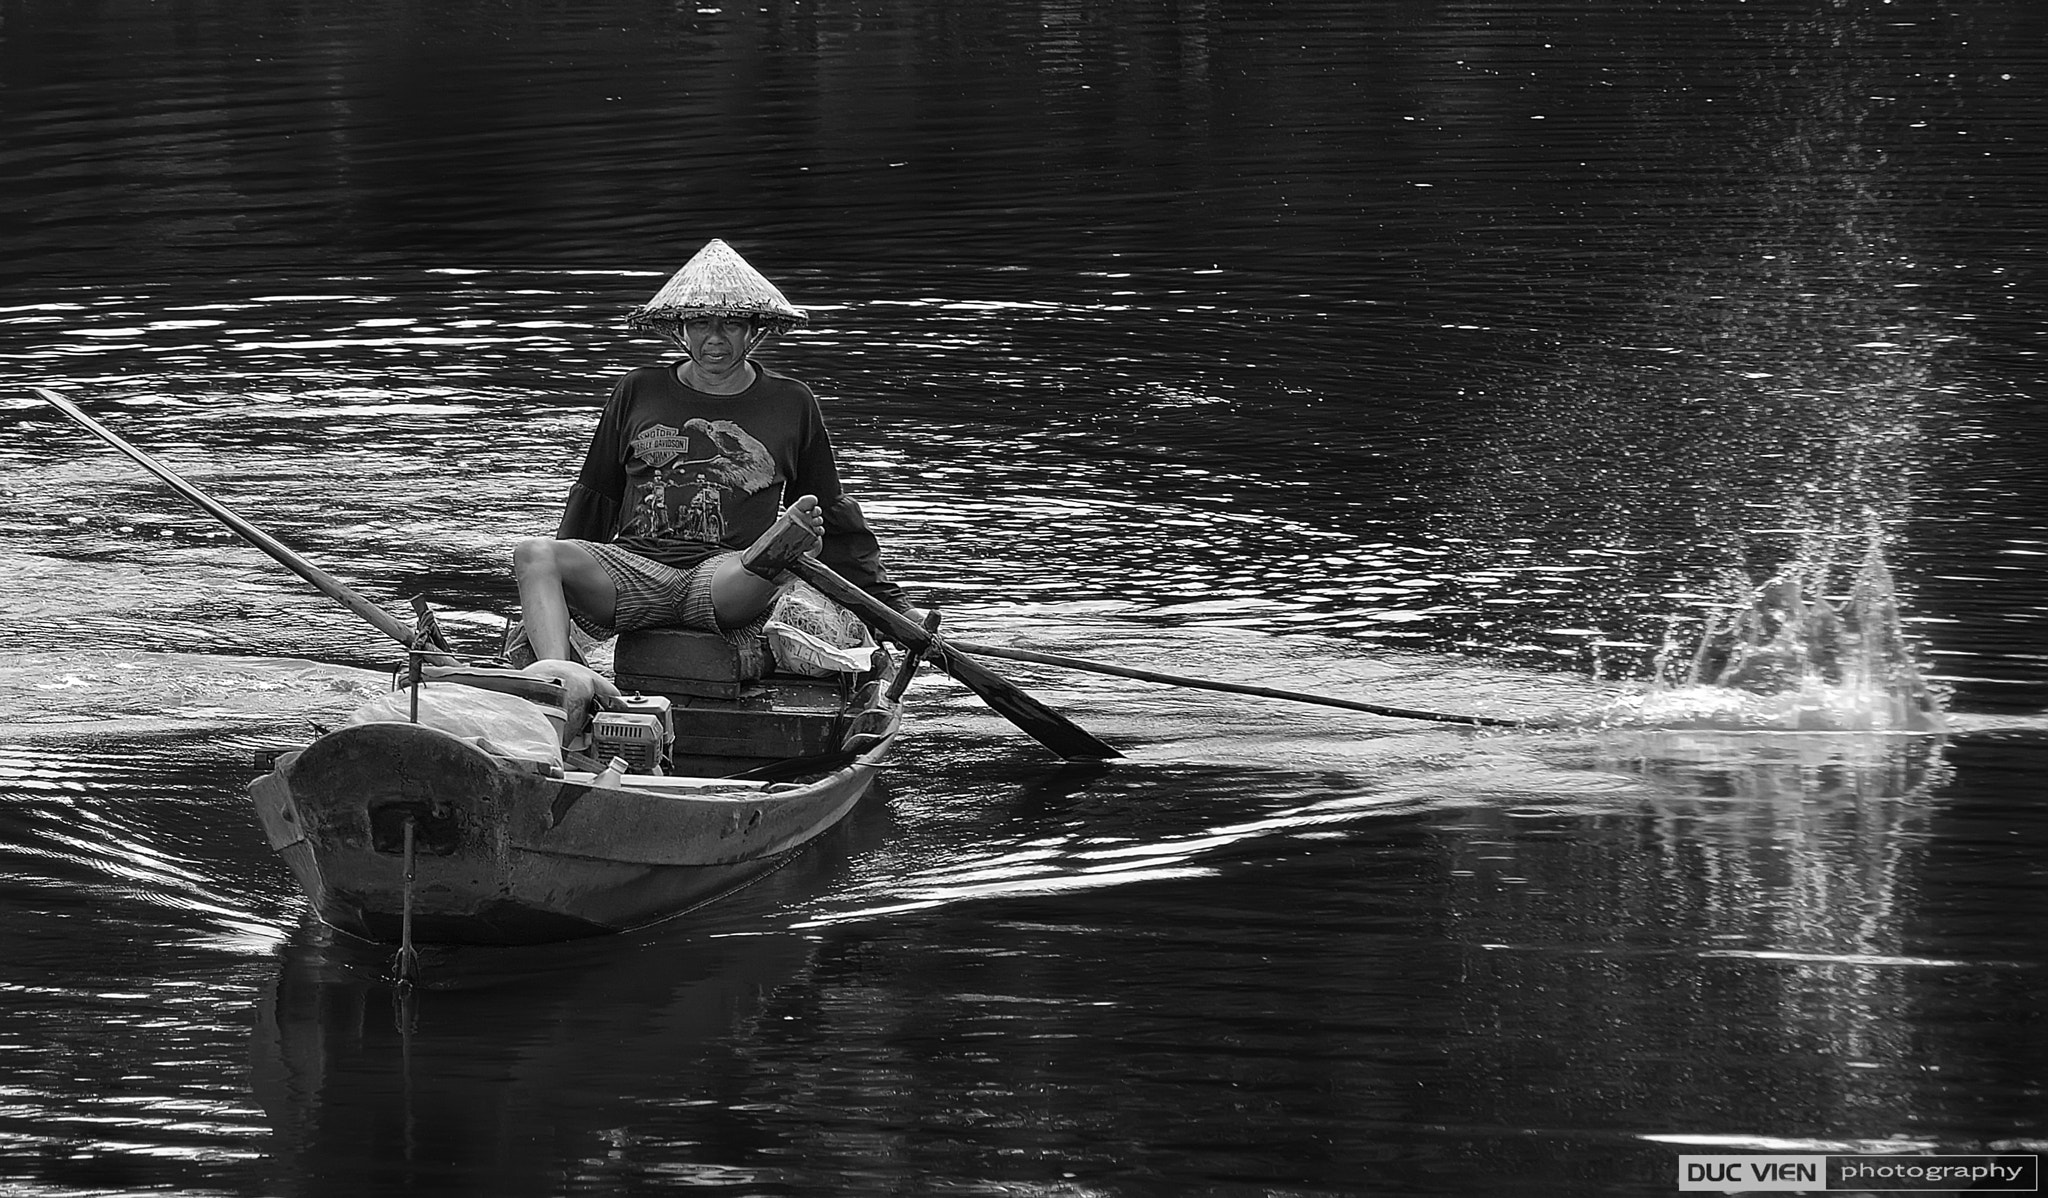 Photograph Fishman by Duc Vien on 500px